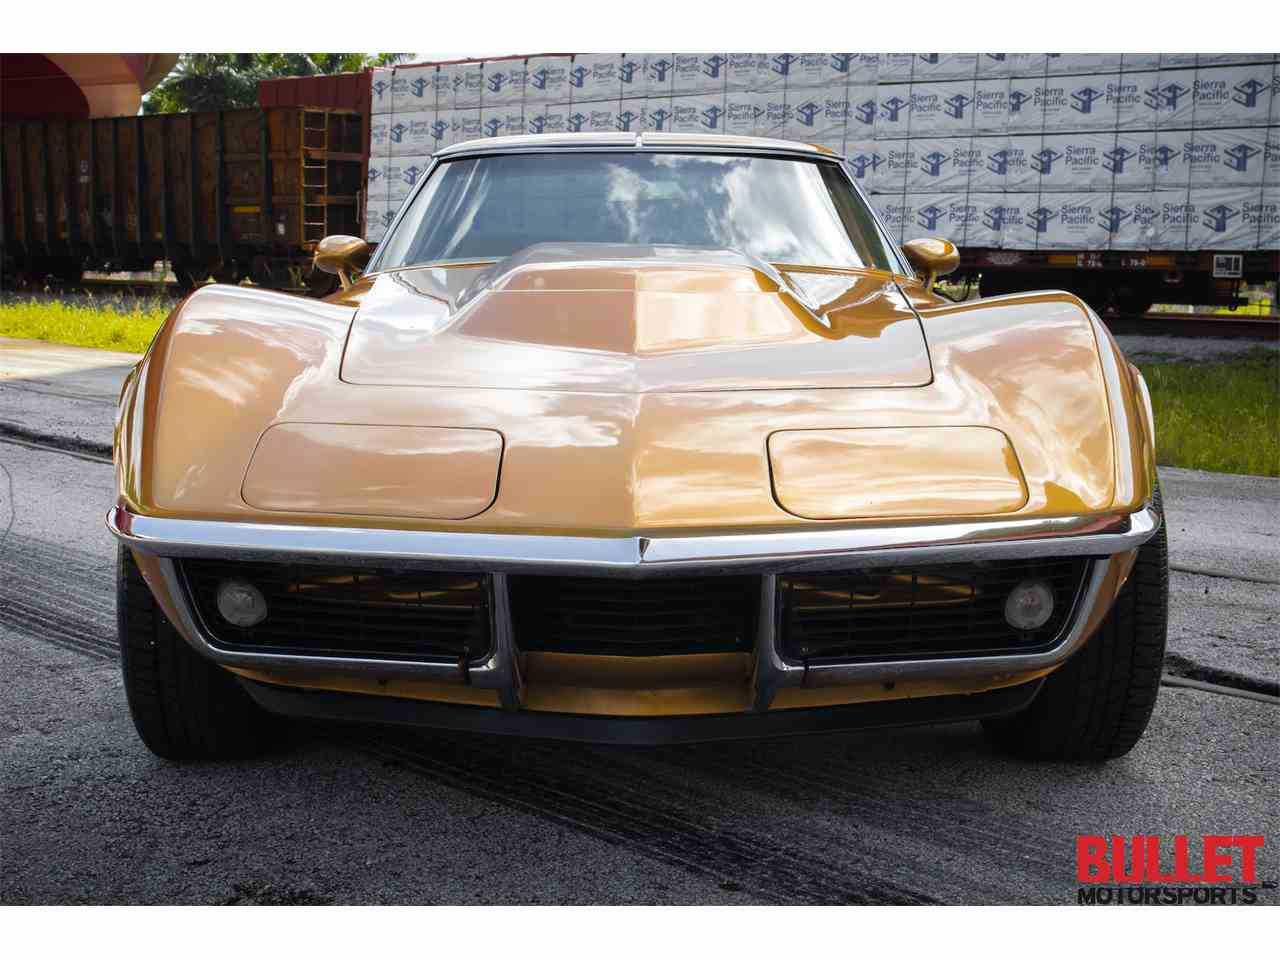 Large Picture of Classic '69 Chevrolet Corvette located in Florida Offered by Bullet Motorsports Inc - LS2F